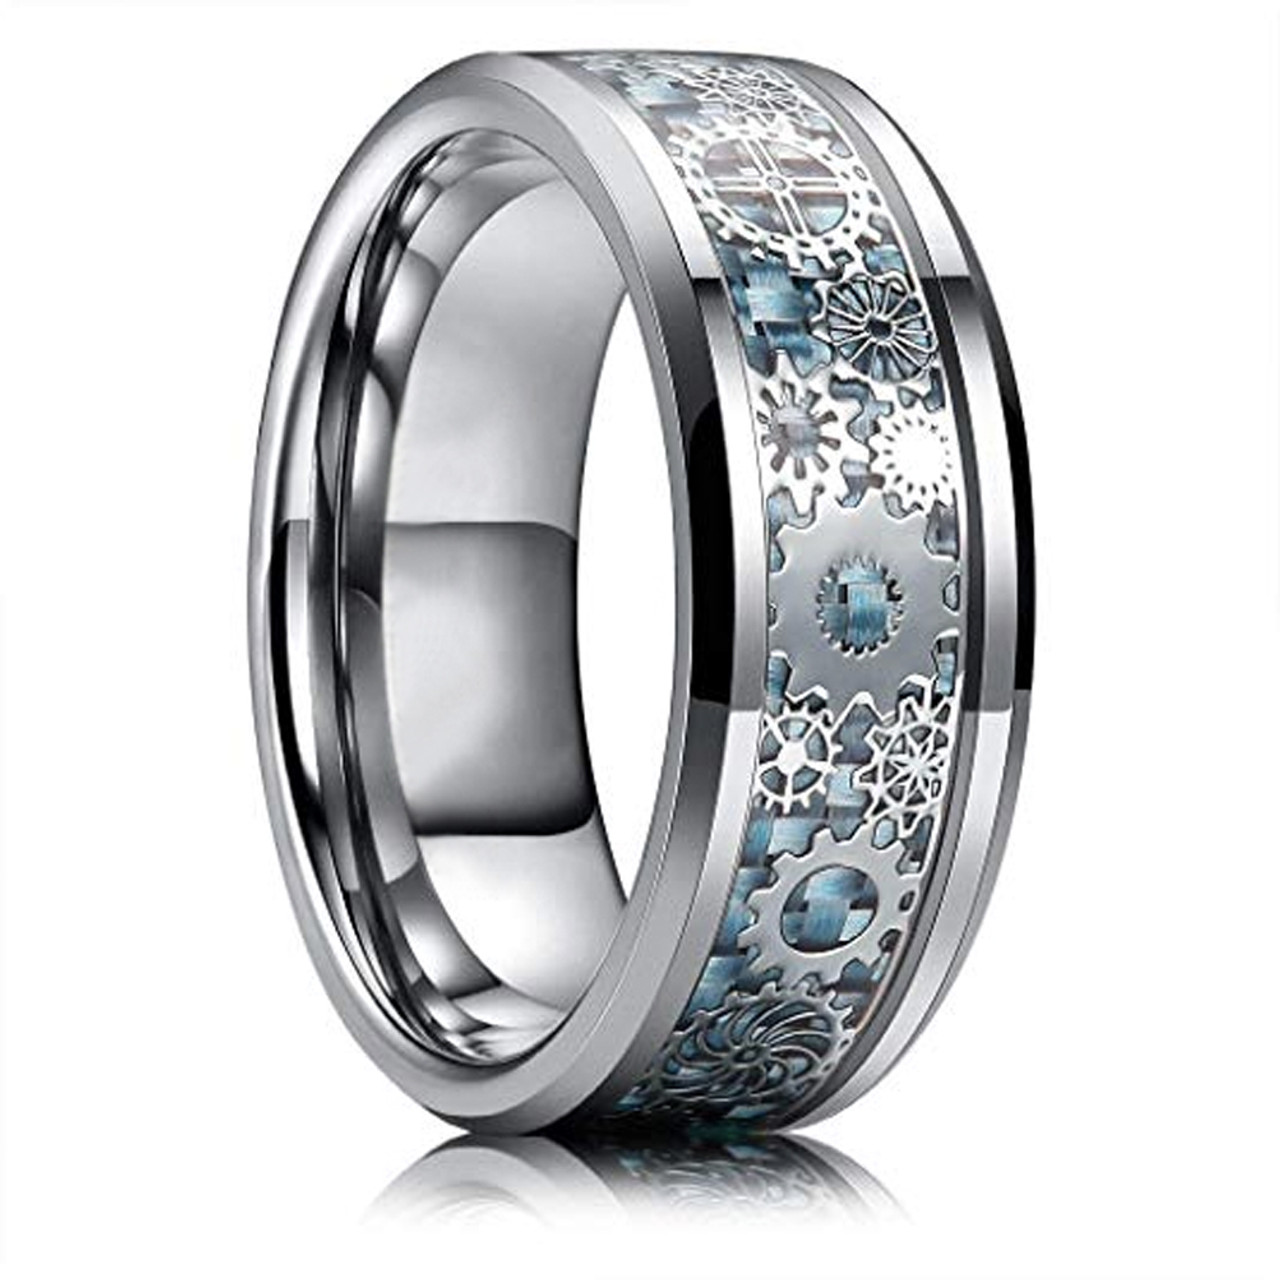 Tungston Carbide Wedding Rings.8mm Unisex Or Men S Tungsten Carbide Wedding Ring Band Wedding Ring Band Sky Blue Carbon Fiber Inlay Silver Band With Silver Mechanical Gears